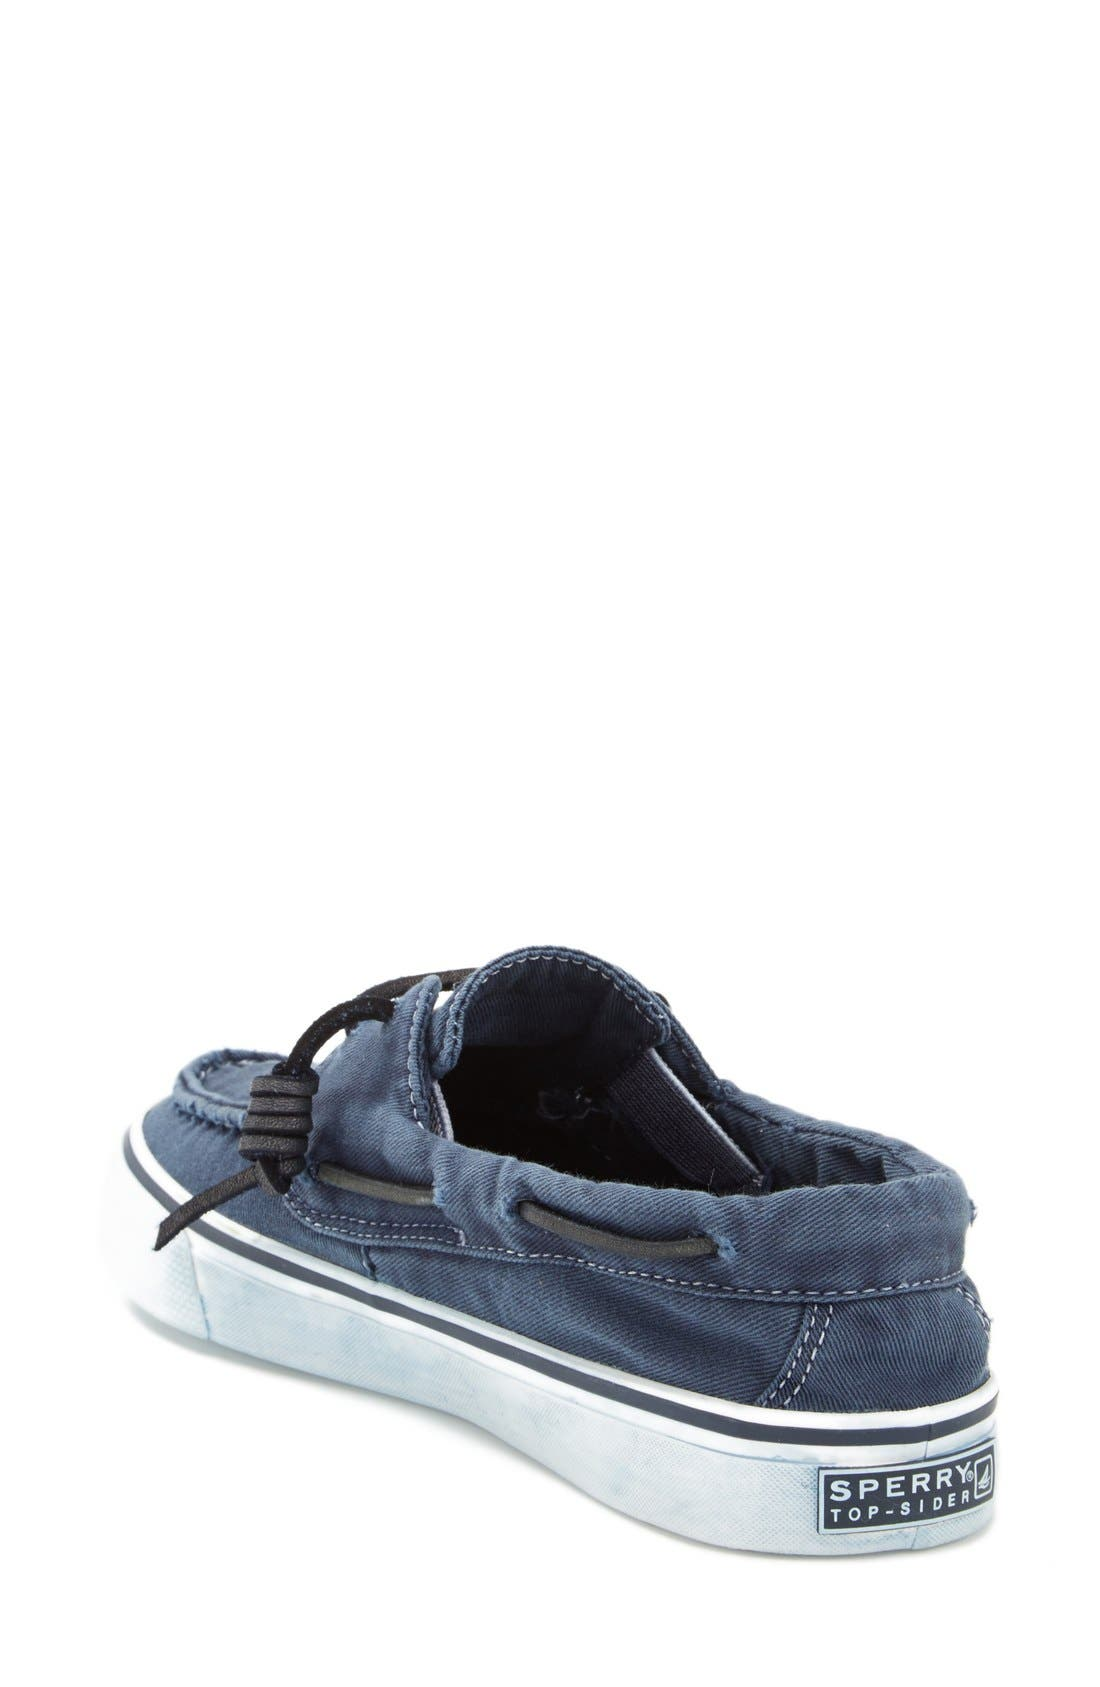 Top-Sider<sup>®</sup> 'Bahama' Sequined Boat Shoe,                             Alternate thumbnail 151, color,